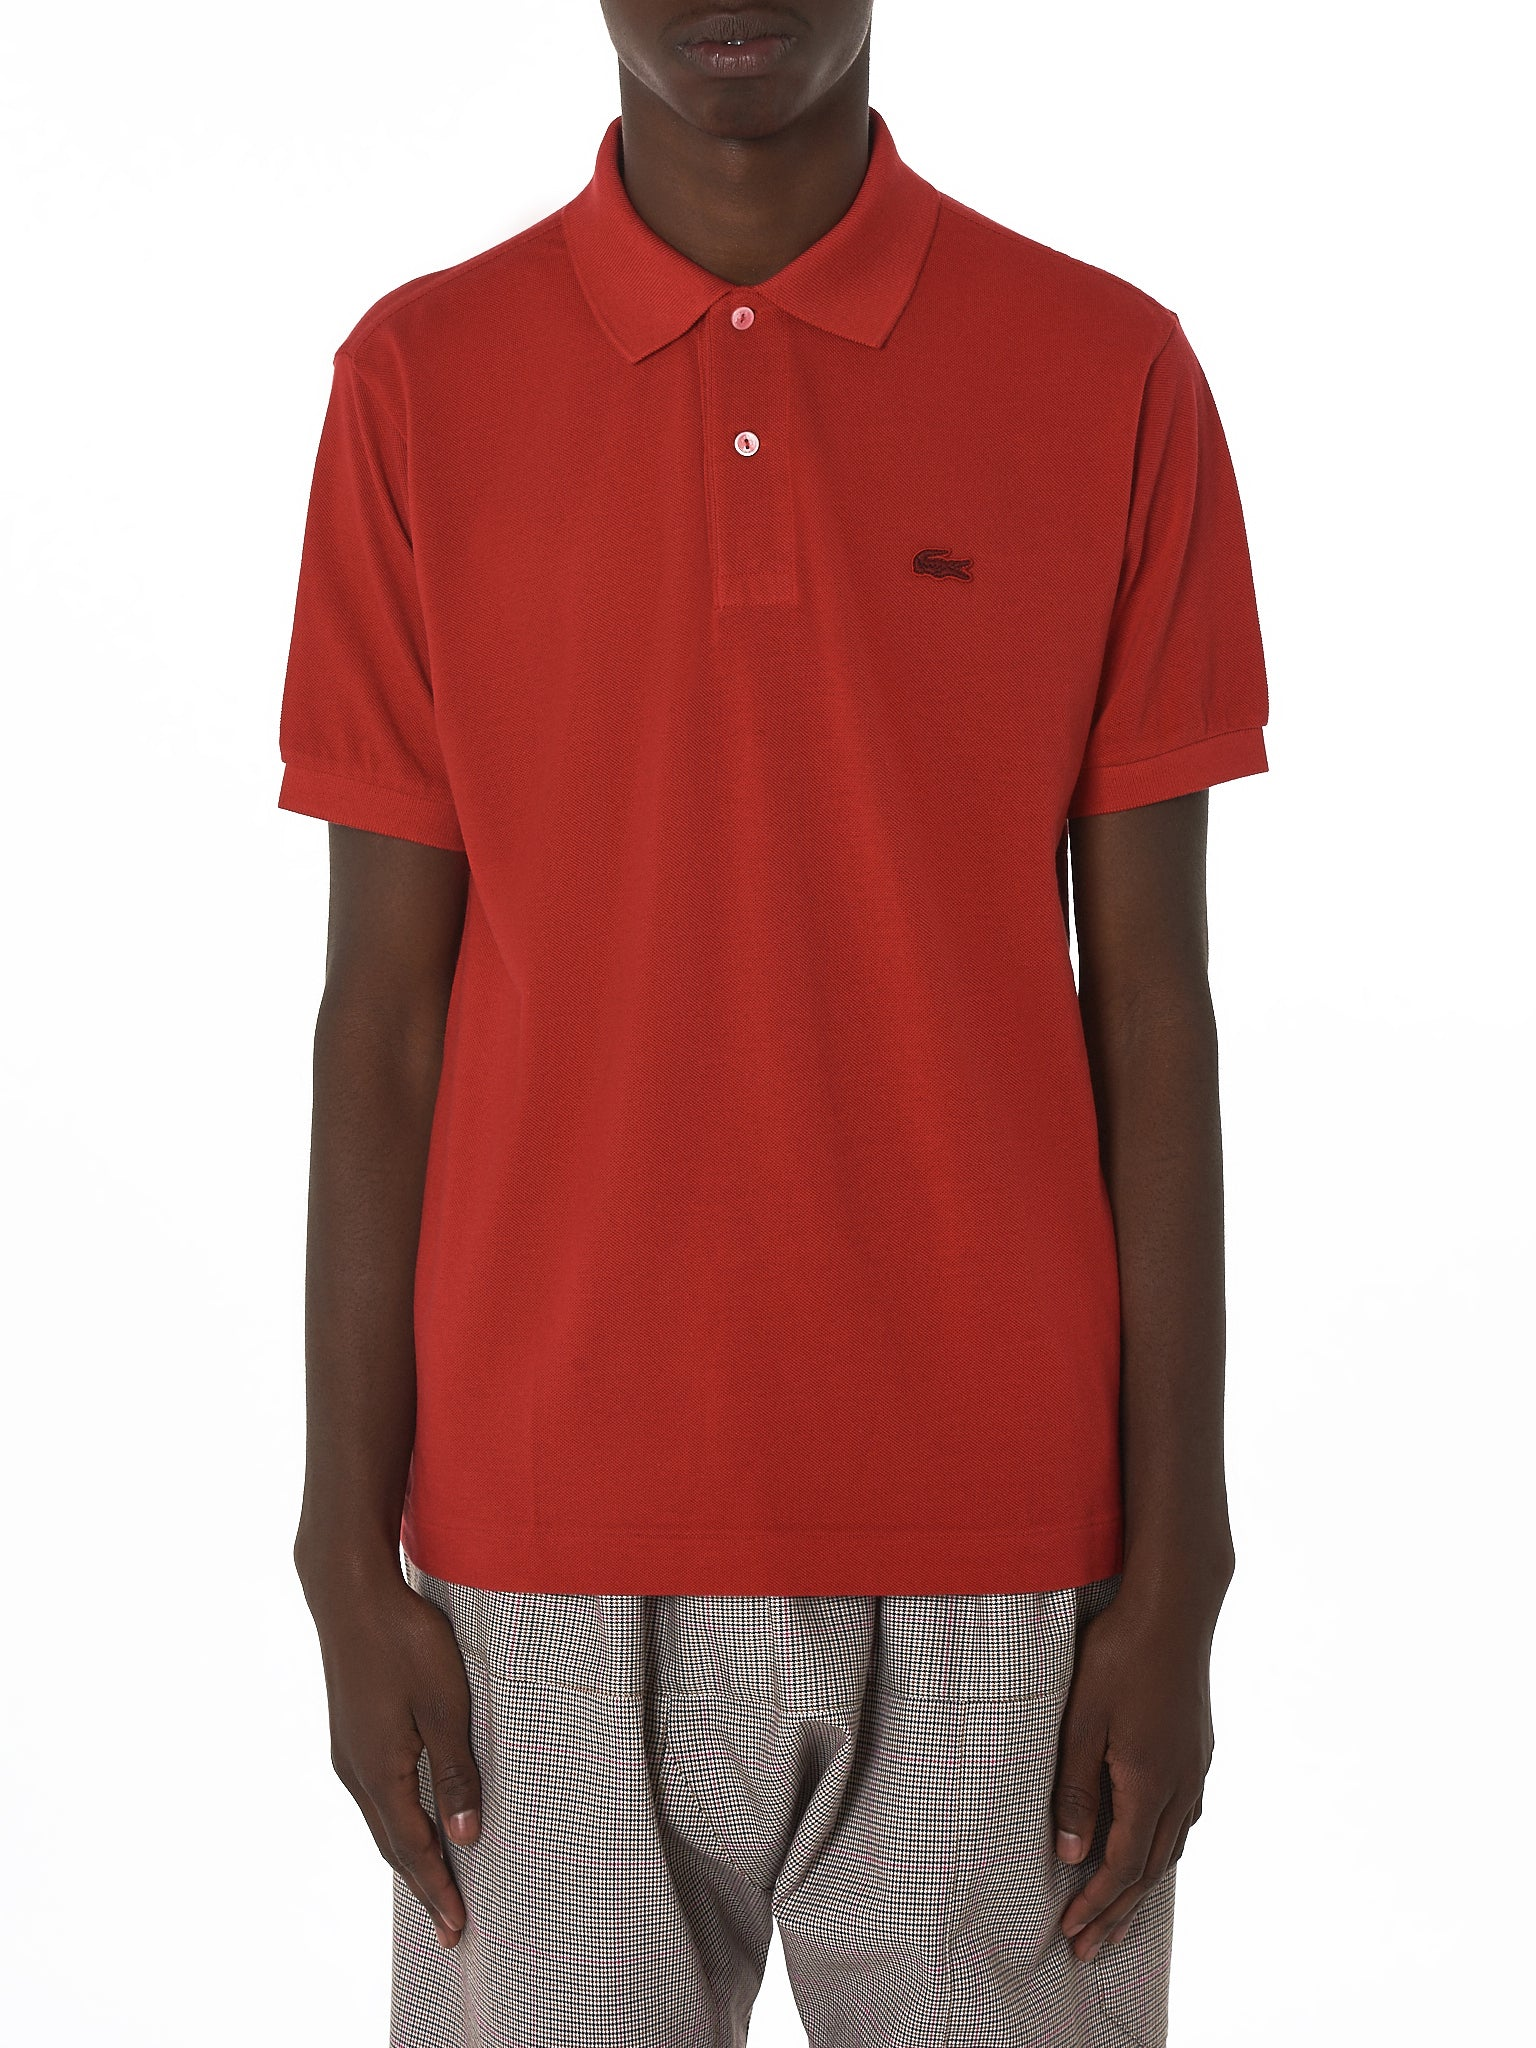 Lacoste Polo Shirts Red Bcd Tofu House